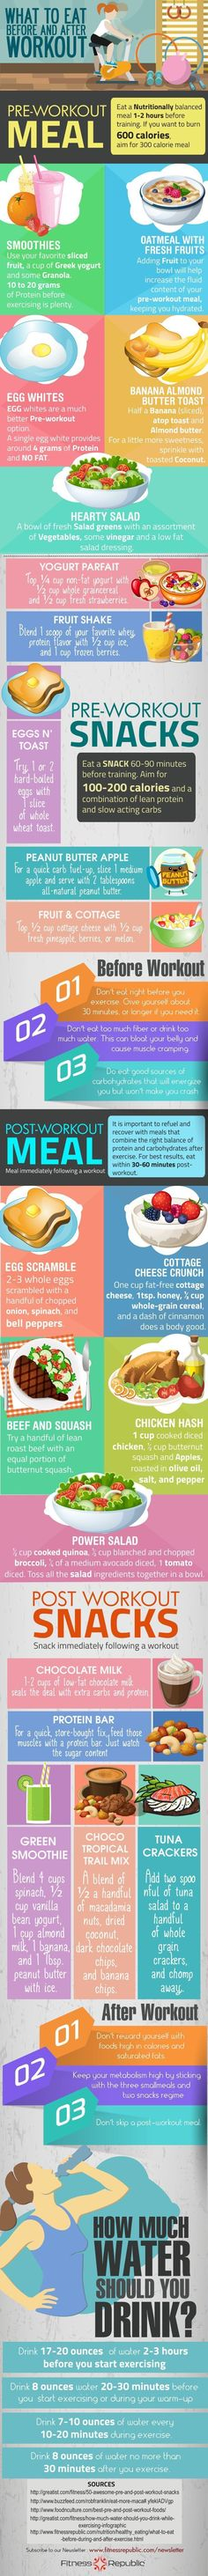 how to lose weight in 4 days, ways to lose weight in a week, ways to lose weight - pre and post workout revocery infographic